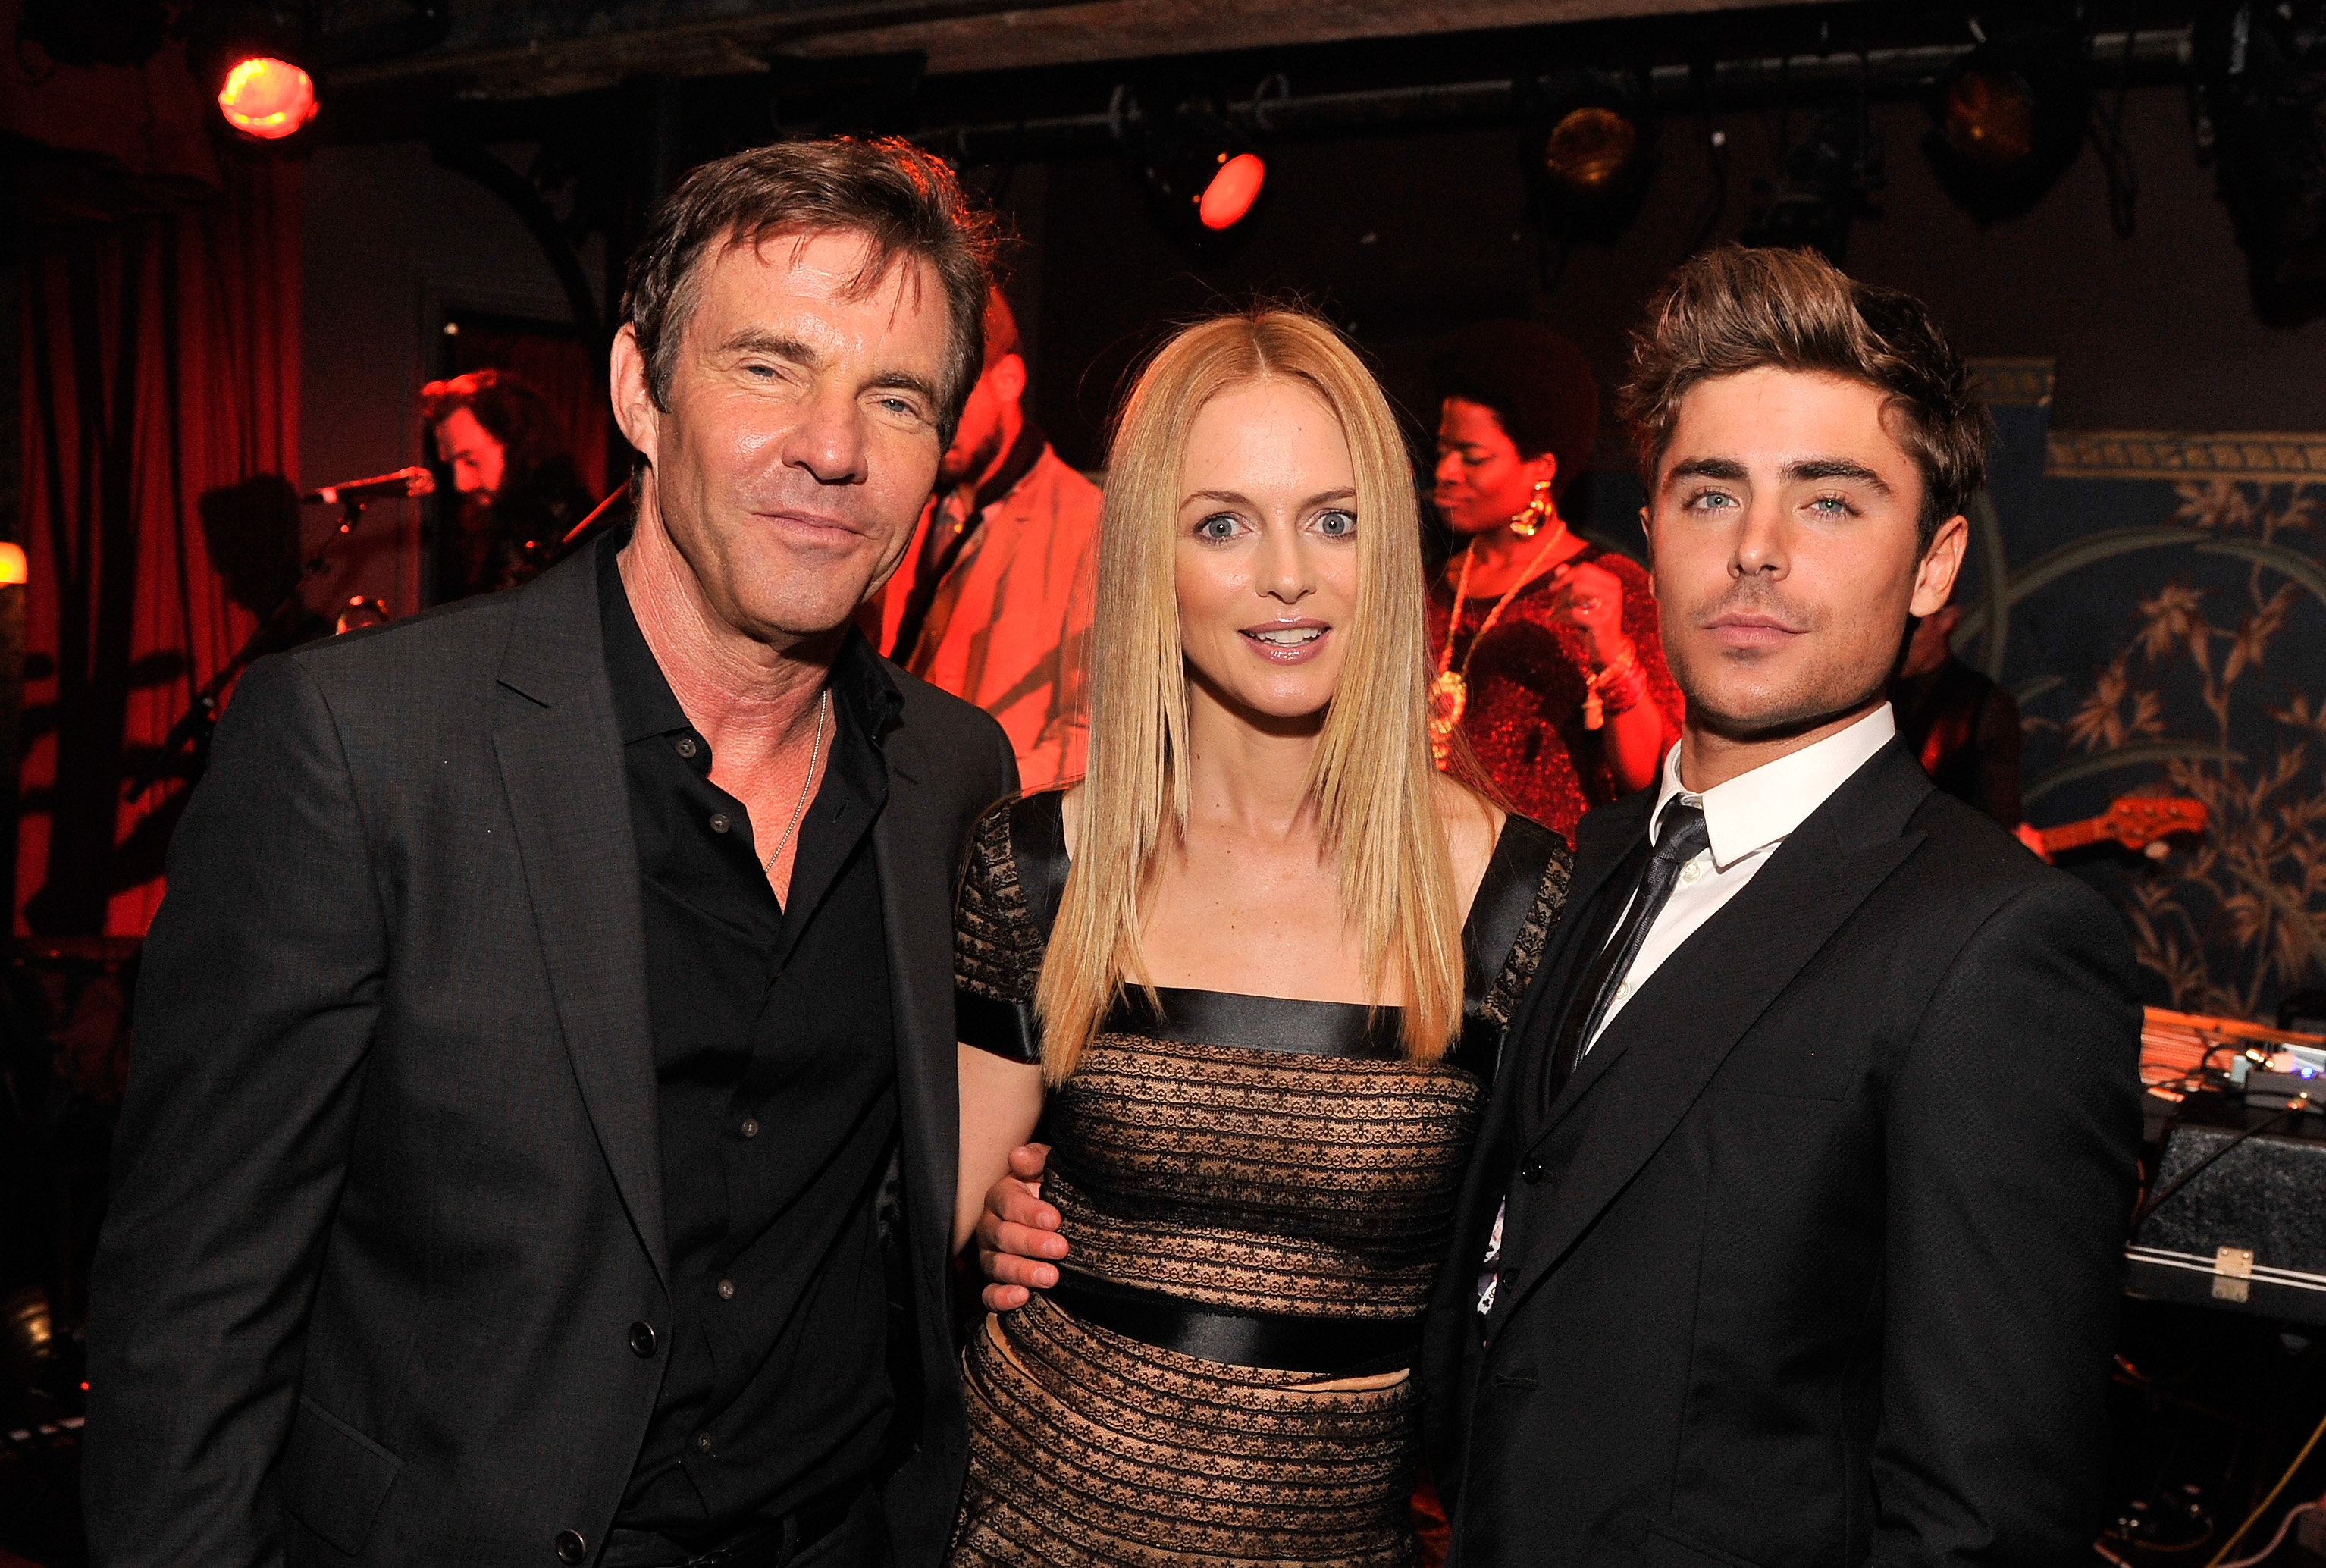 Dennis Quaid, Heather Graham, and Zac Efron partied it up